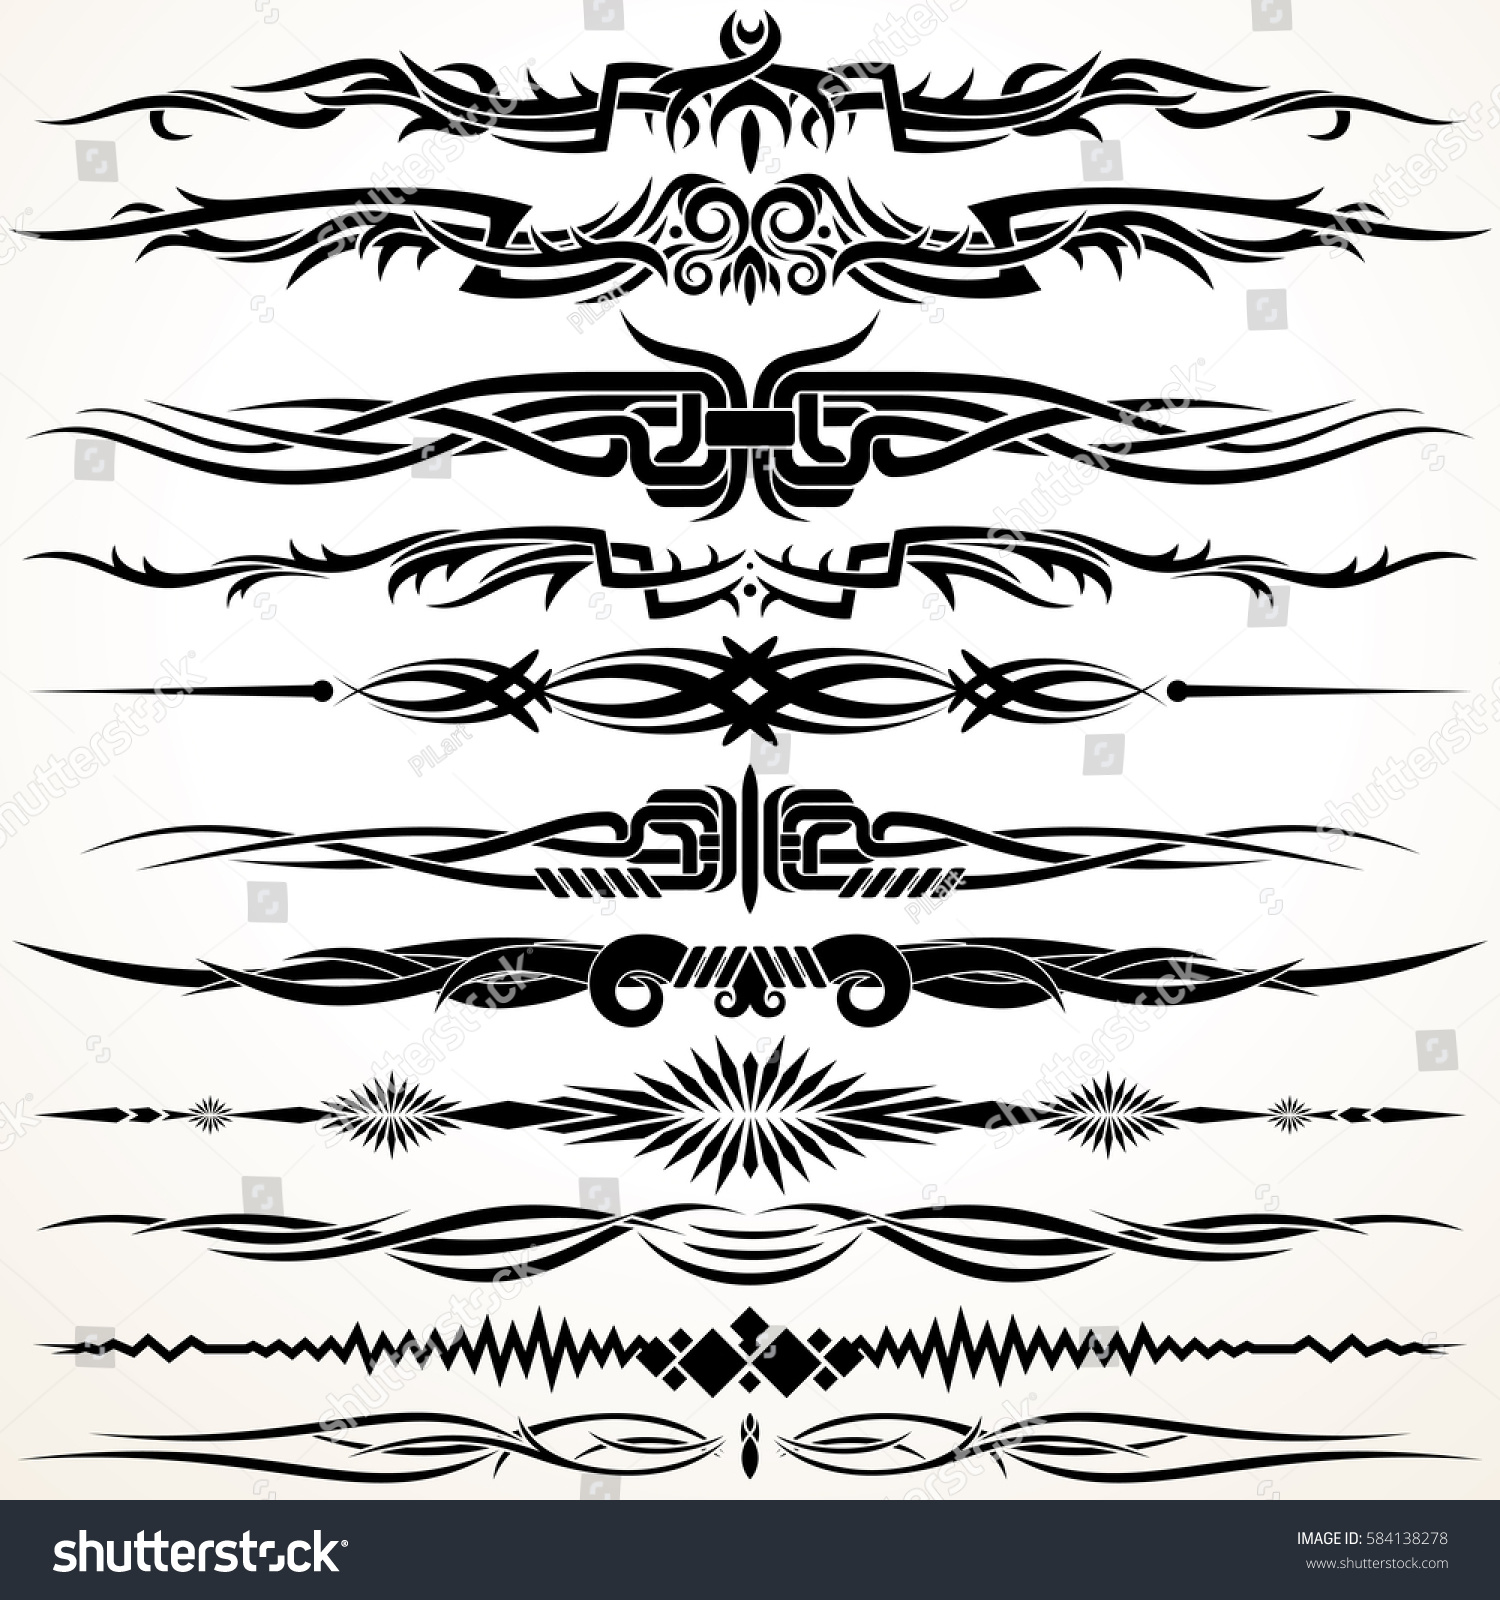 Tribal gothic style design lines vector stock vector for Gothic design elements